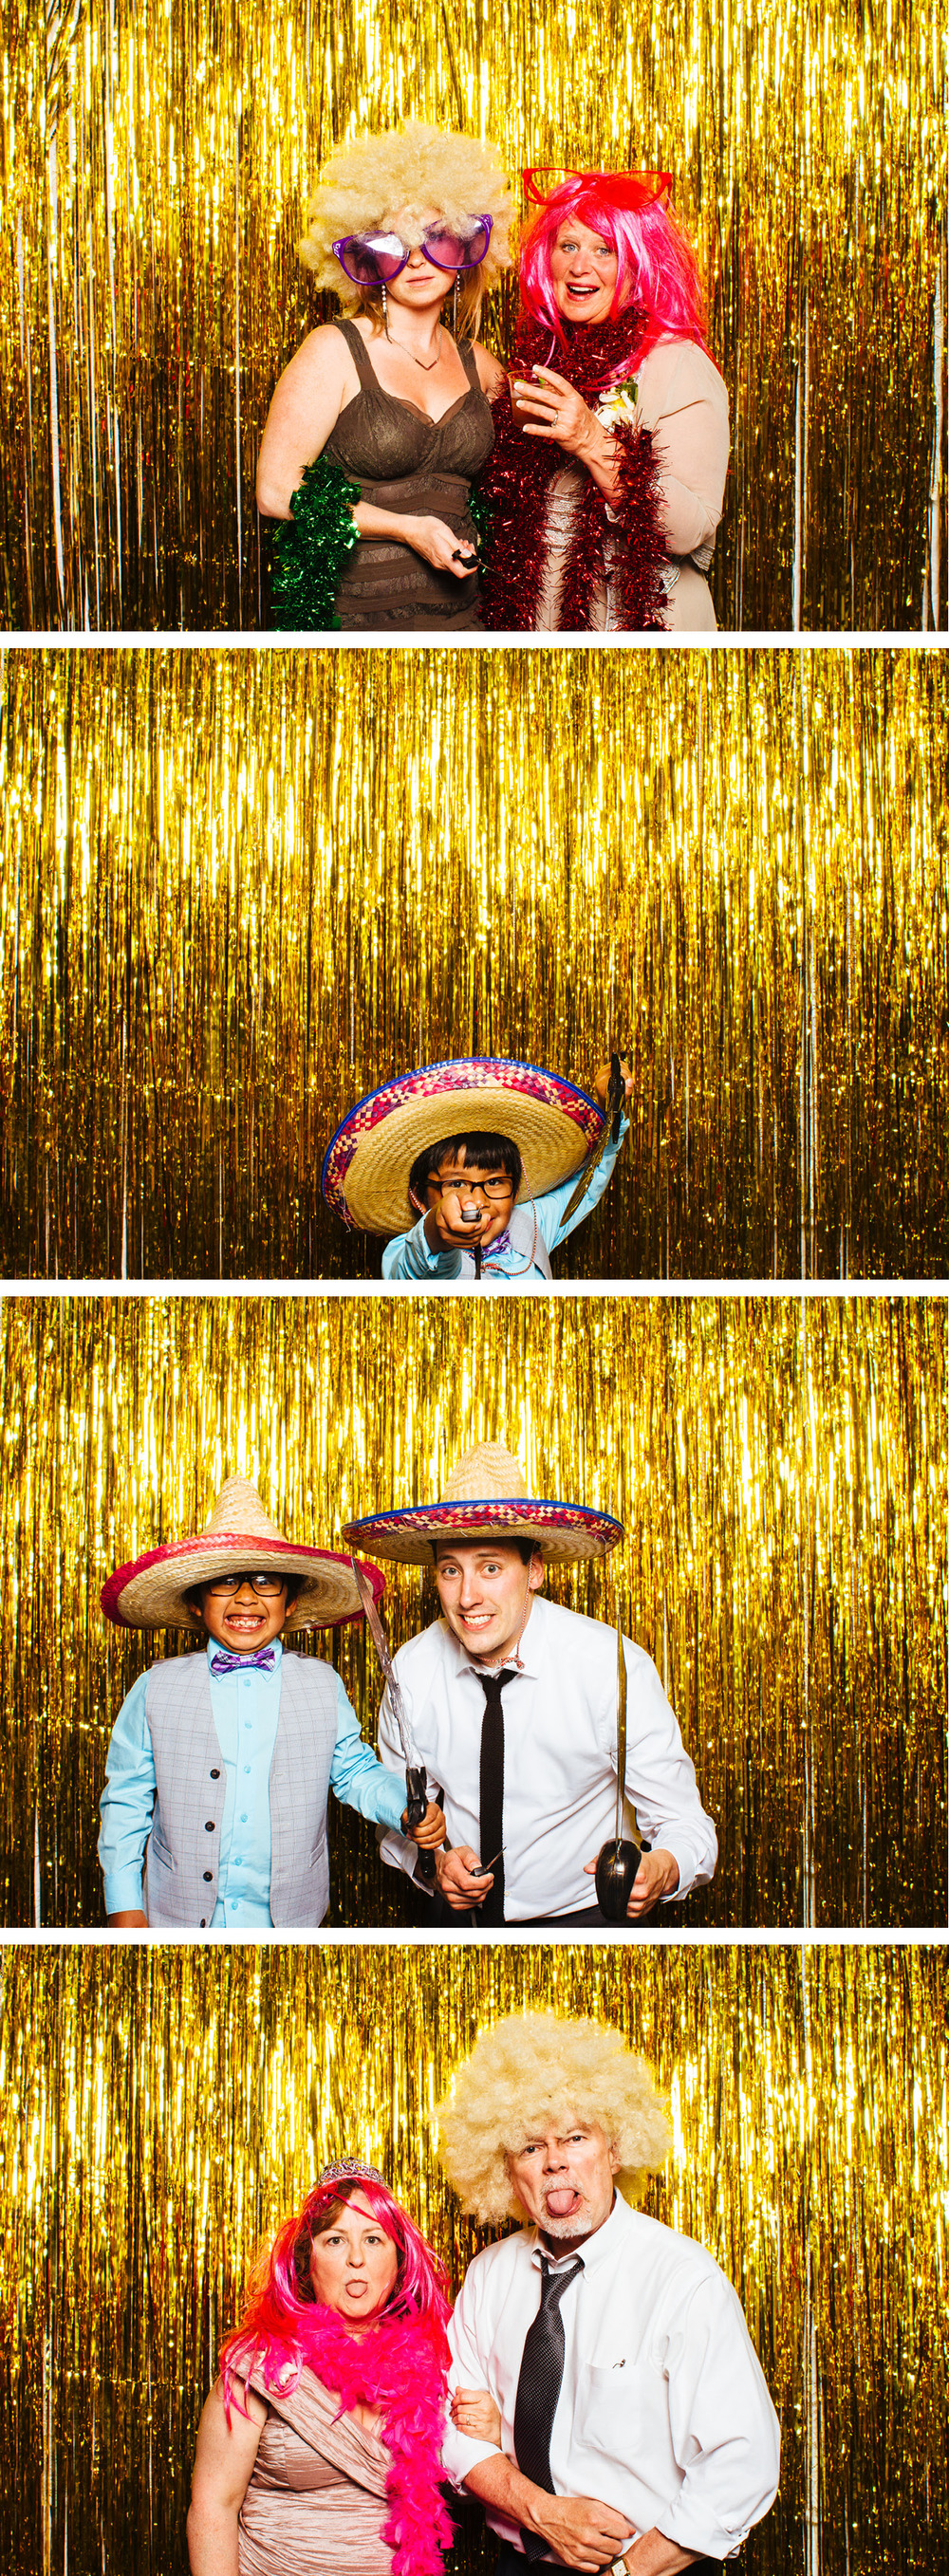 CK-Photo-Nashville-Wedding-Photographer-Photobooth-DL10.jpg